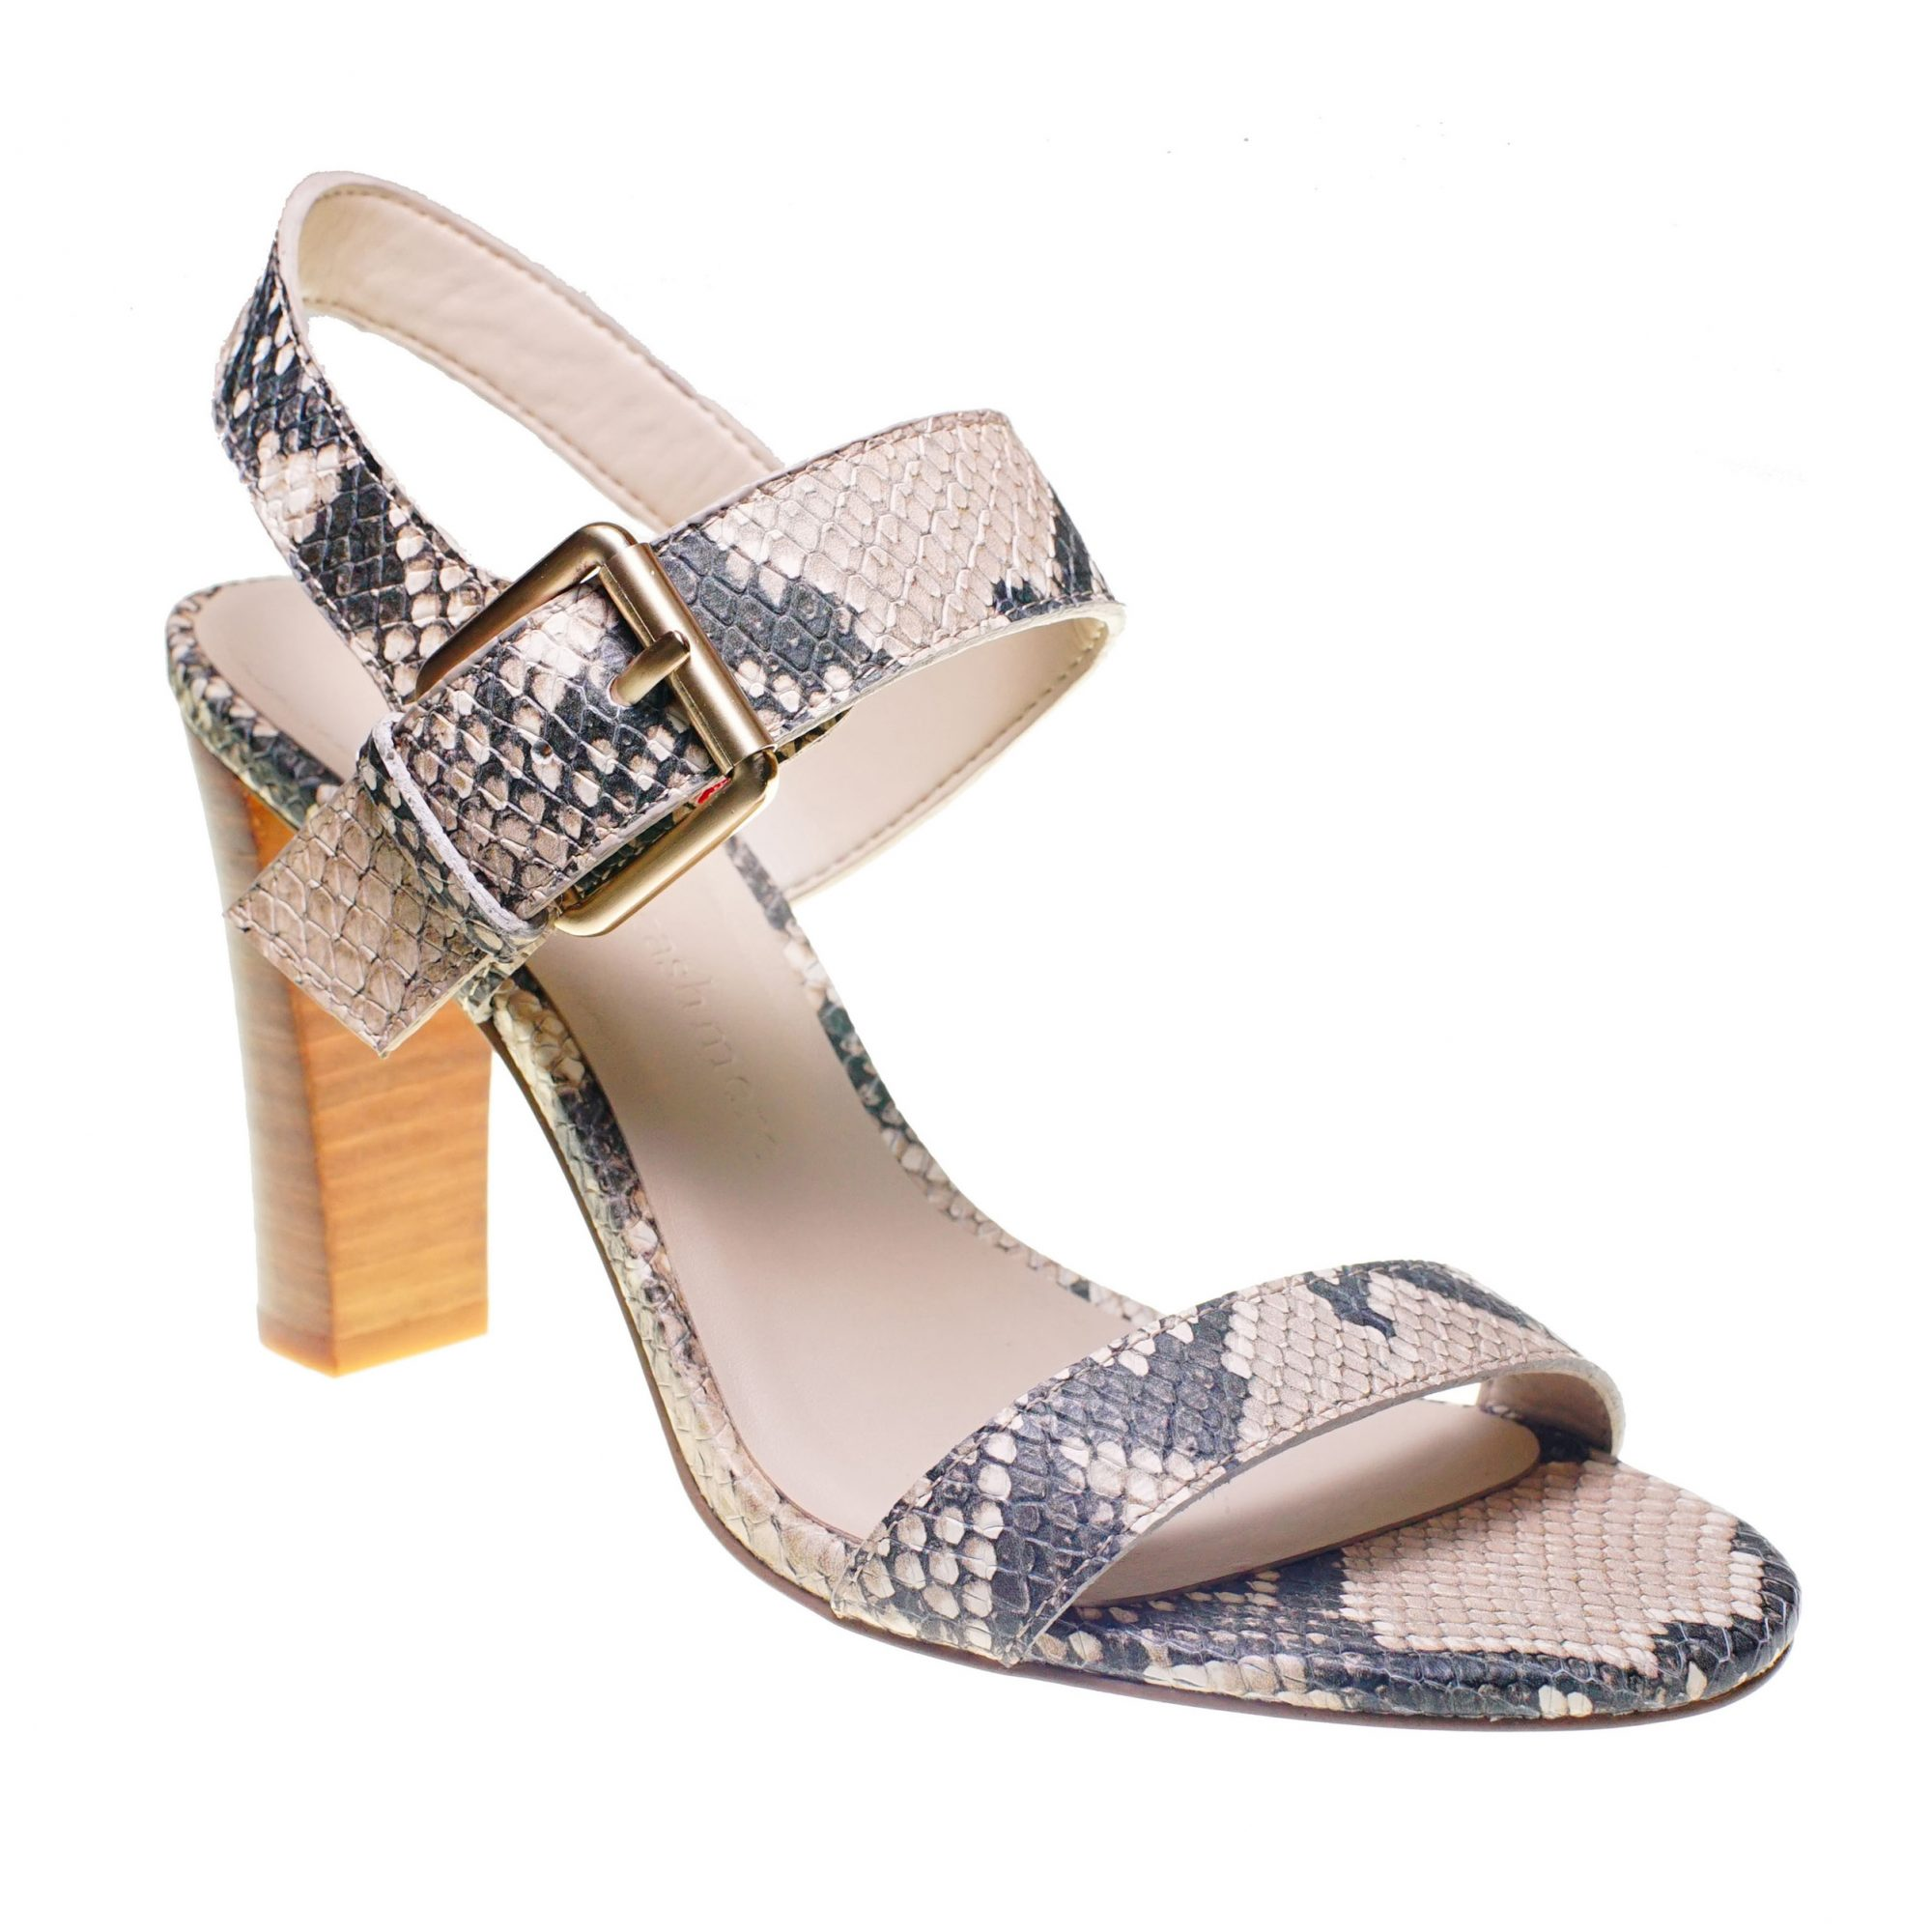 Snake print heeled sandal from Cupcakes and Cashmere shoe collection at Nordstrom